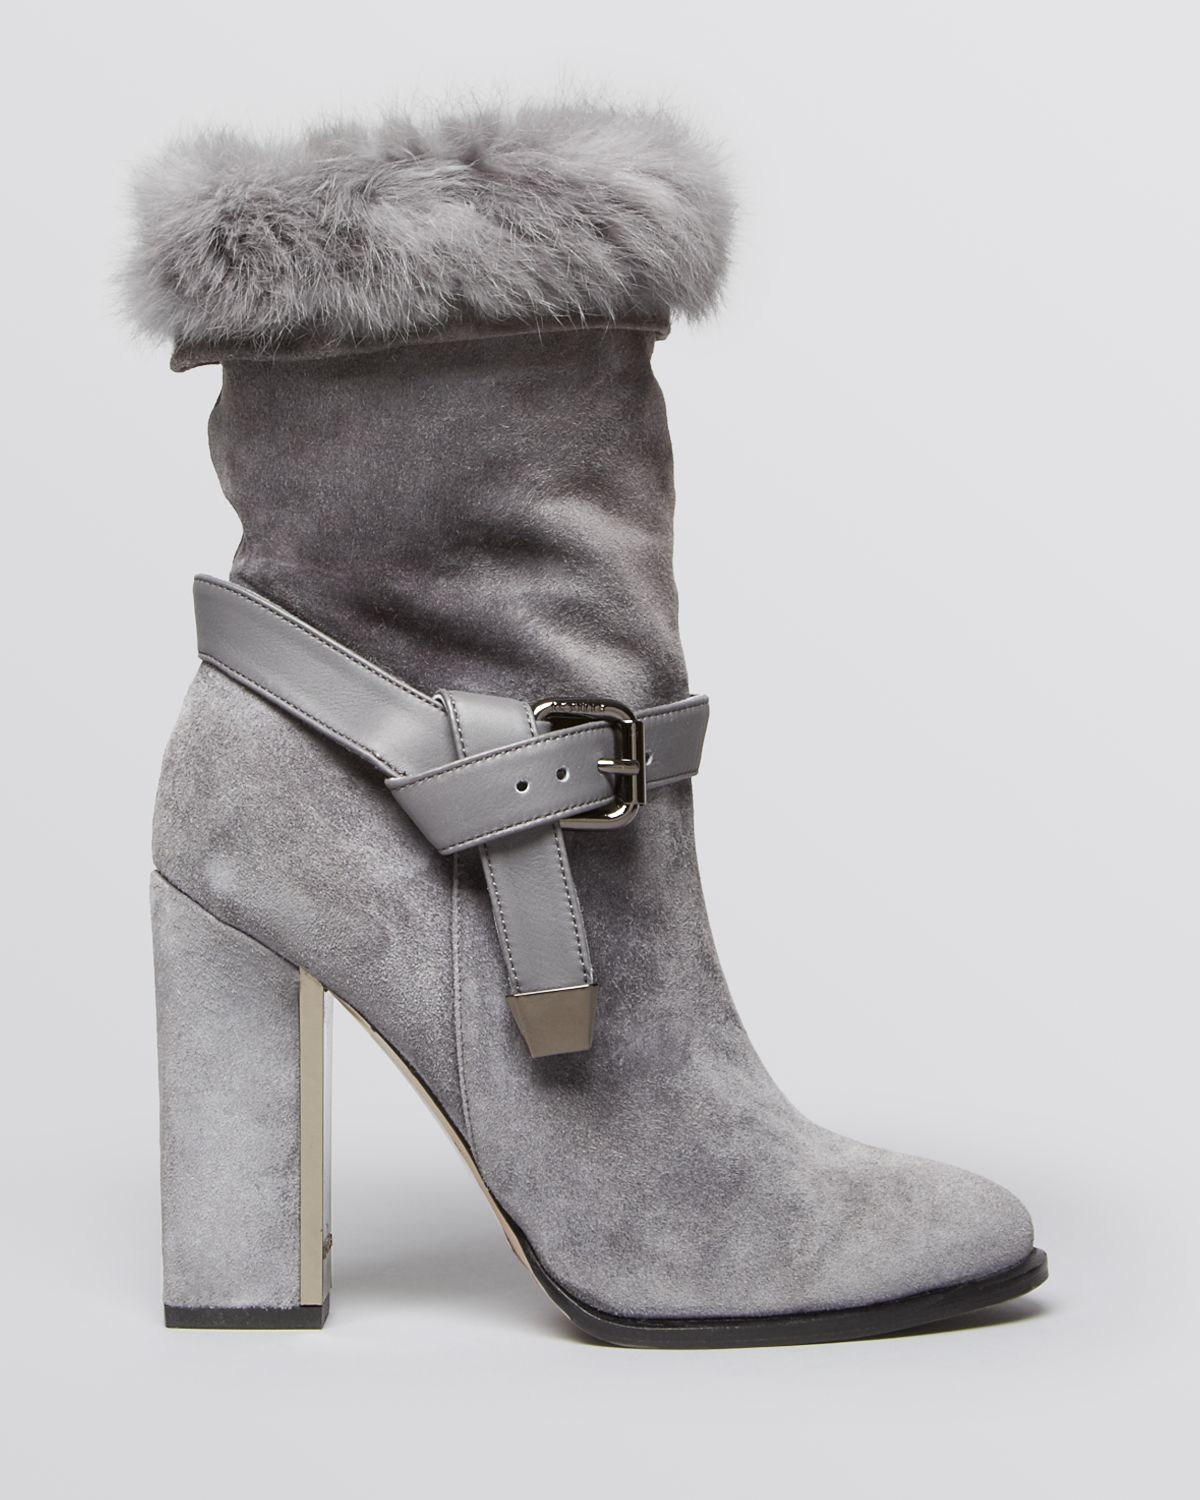 Le Silla Boots Le Silla Pointed Toe High Heel Fur Platform Boots In Gray